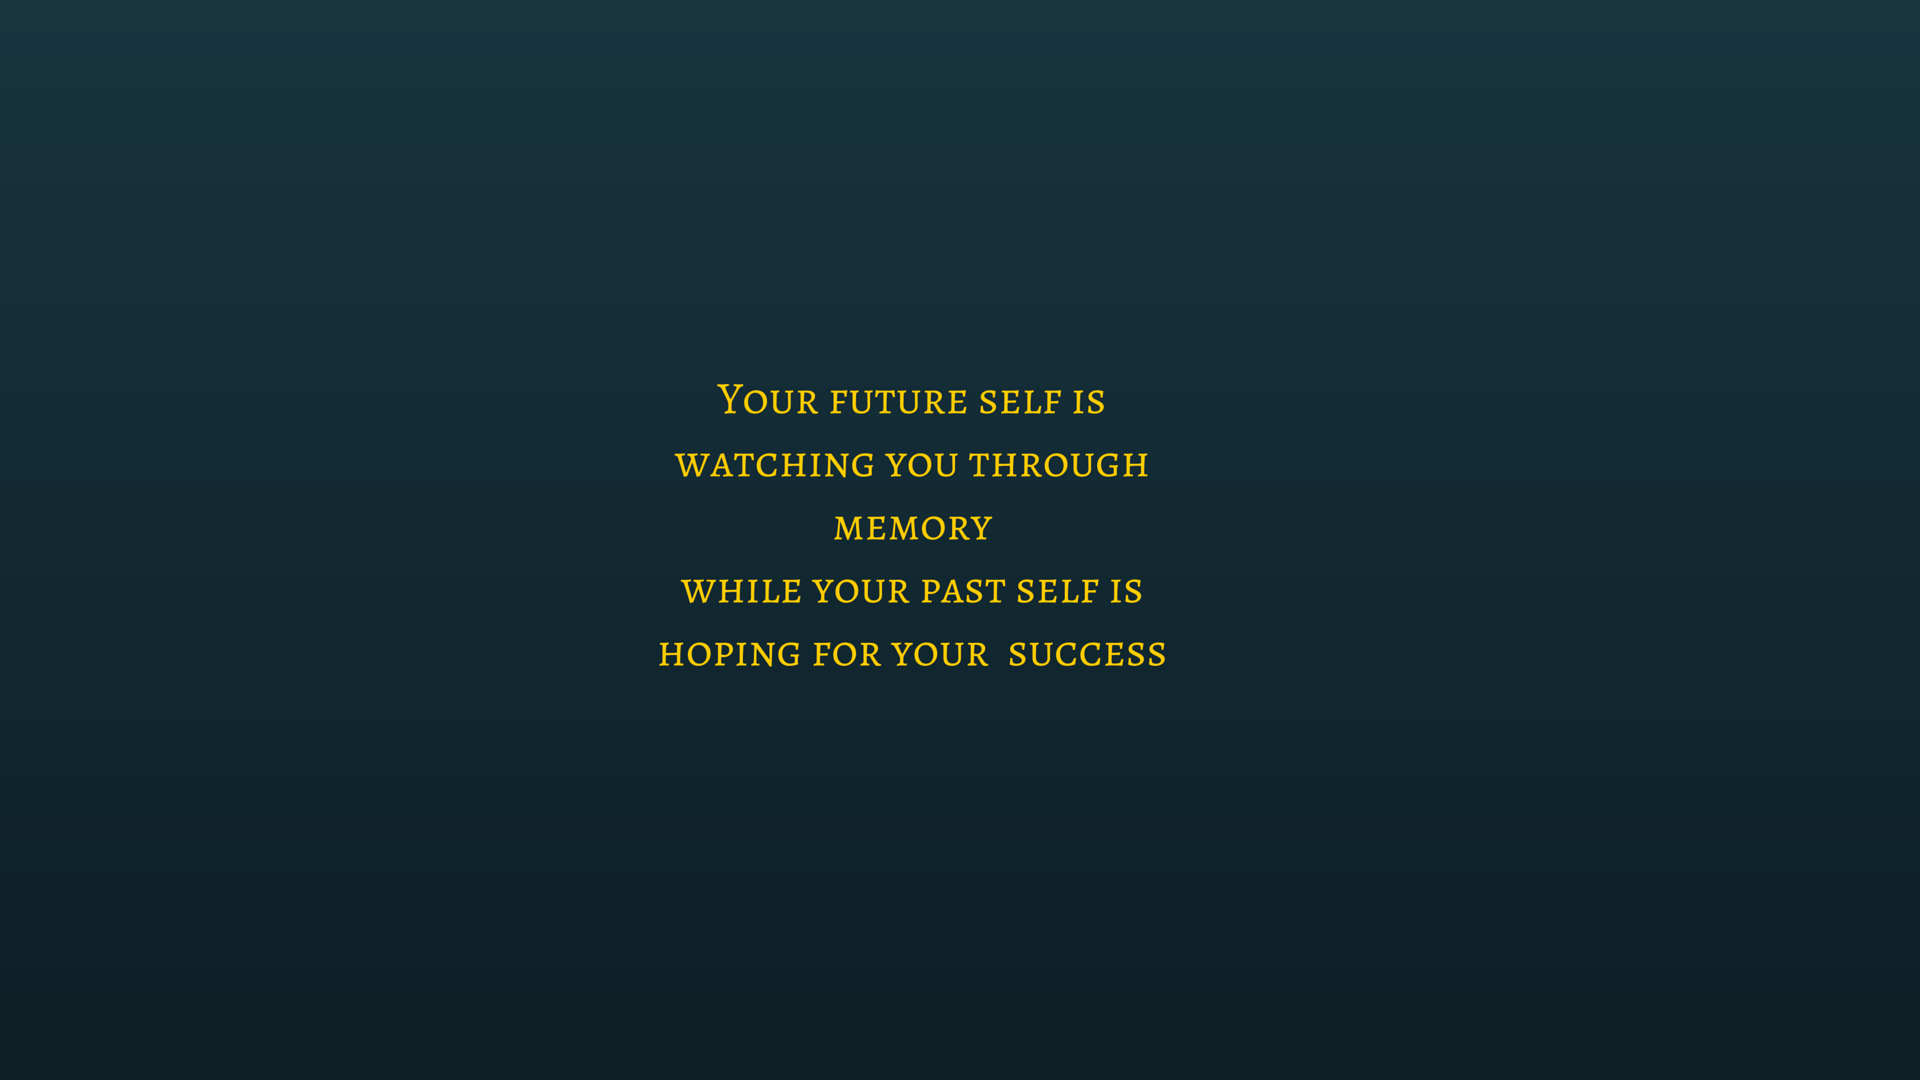 [Image] Your futrue self is watching you through memory,While your past self is hoping for your success